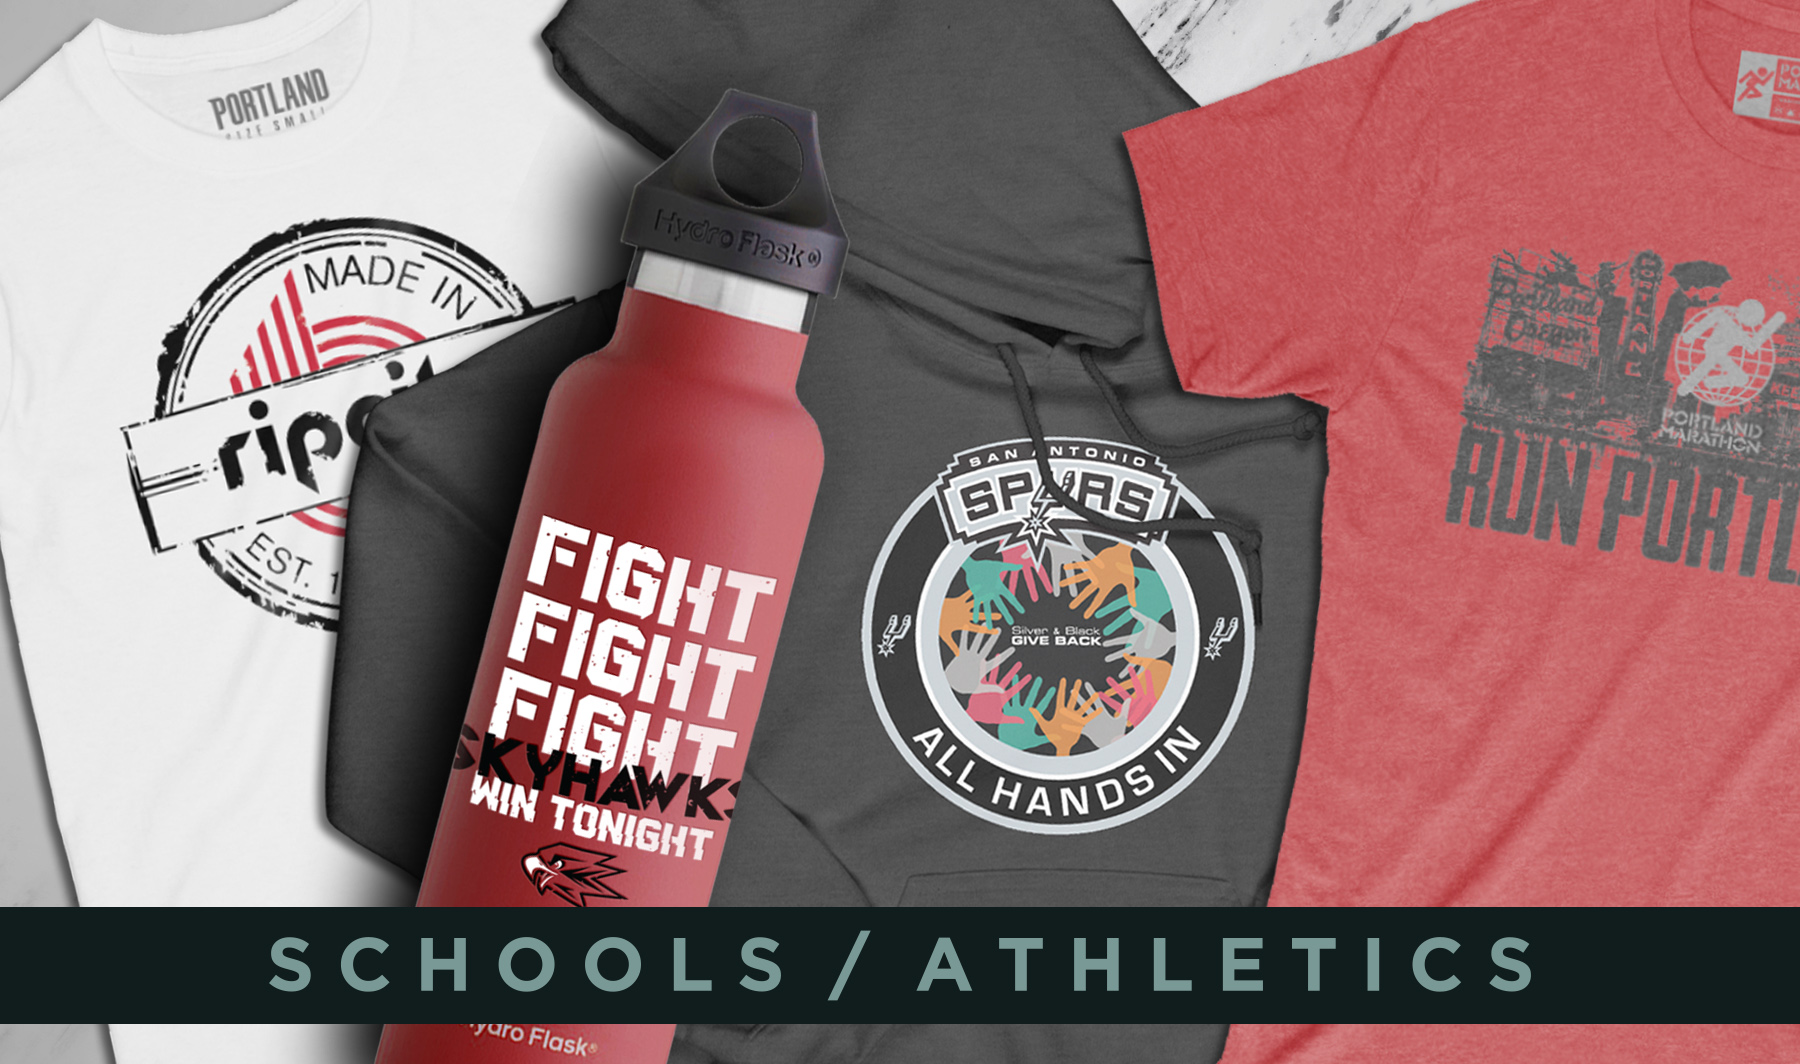 WMS Custom Products Anything Tee Shirts Garments - Blazers athletics schools southridge spurs portland marathon.jpg